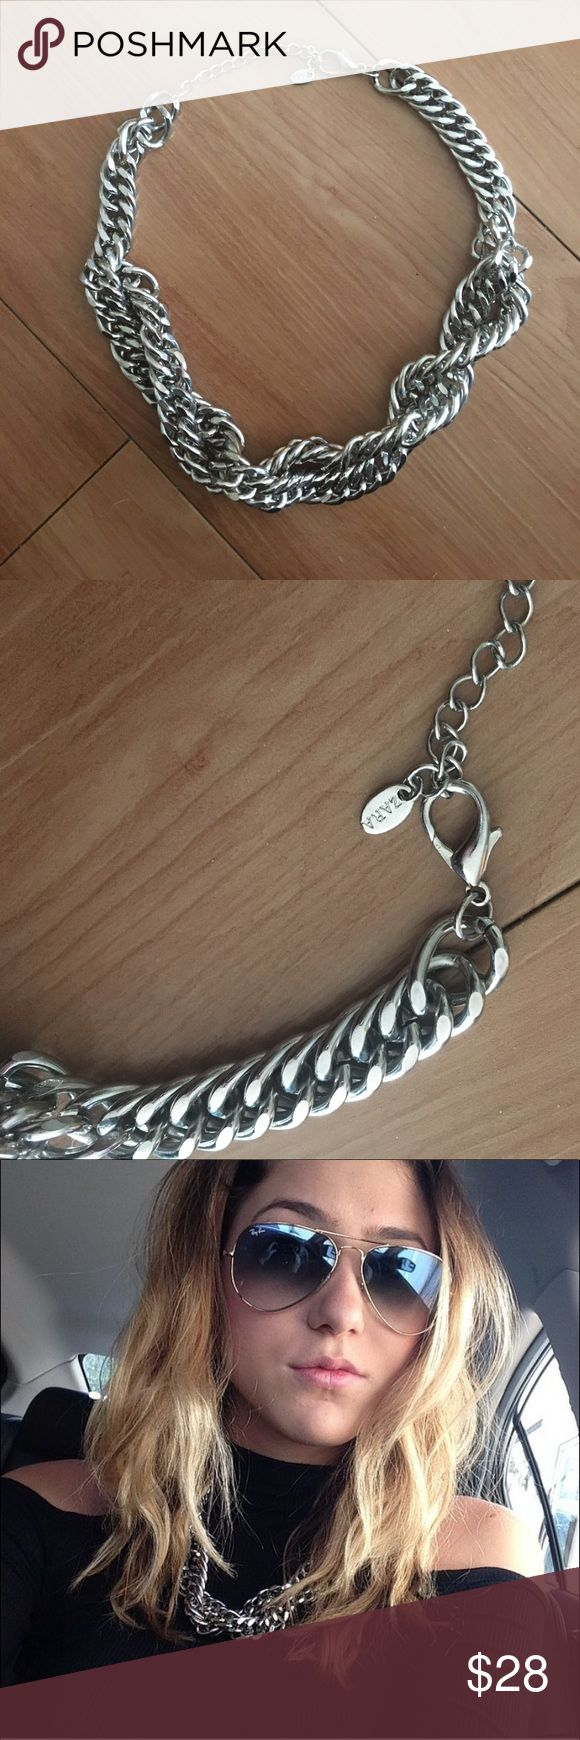 Zara Chunky Chain Necklace Super cute Statement Necklace. Chunky silver chain! Condition is like new! Zara Jewelry Necklaces